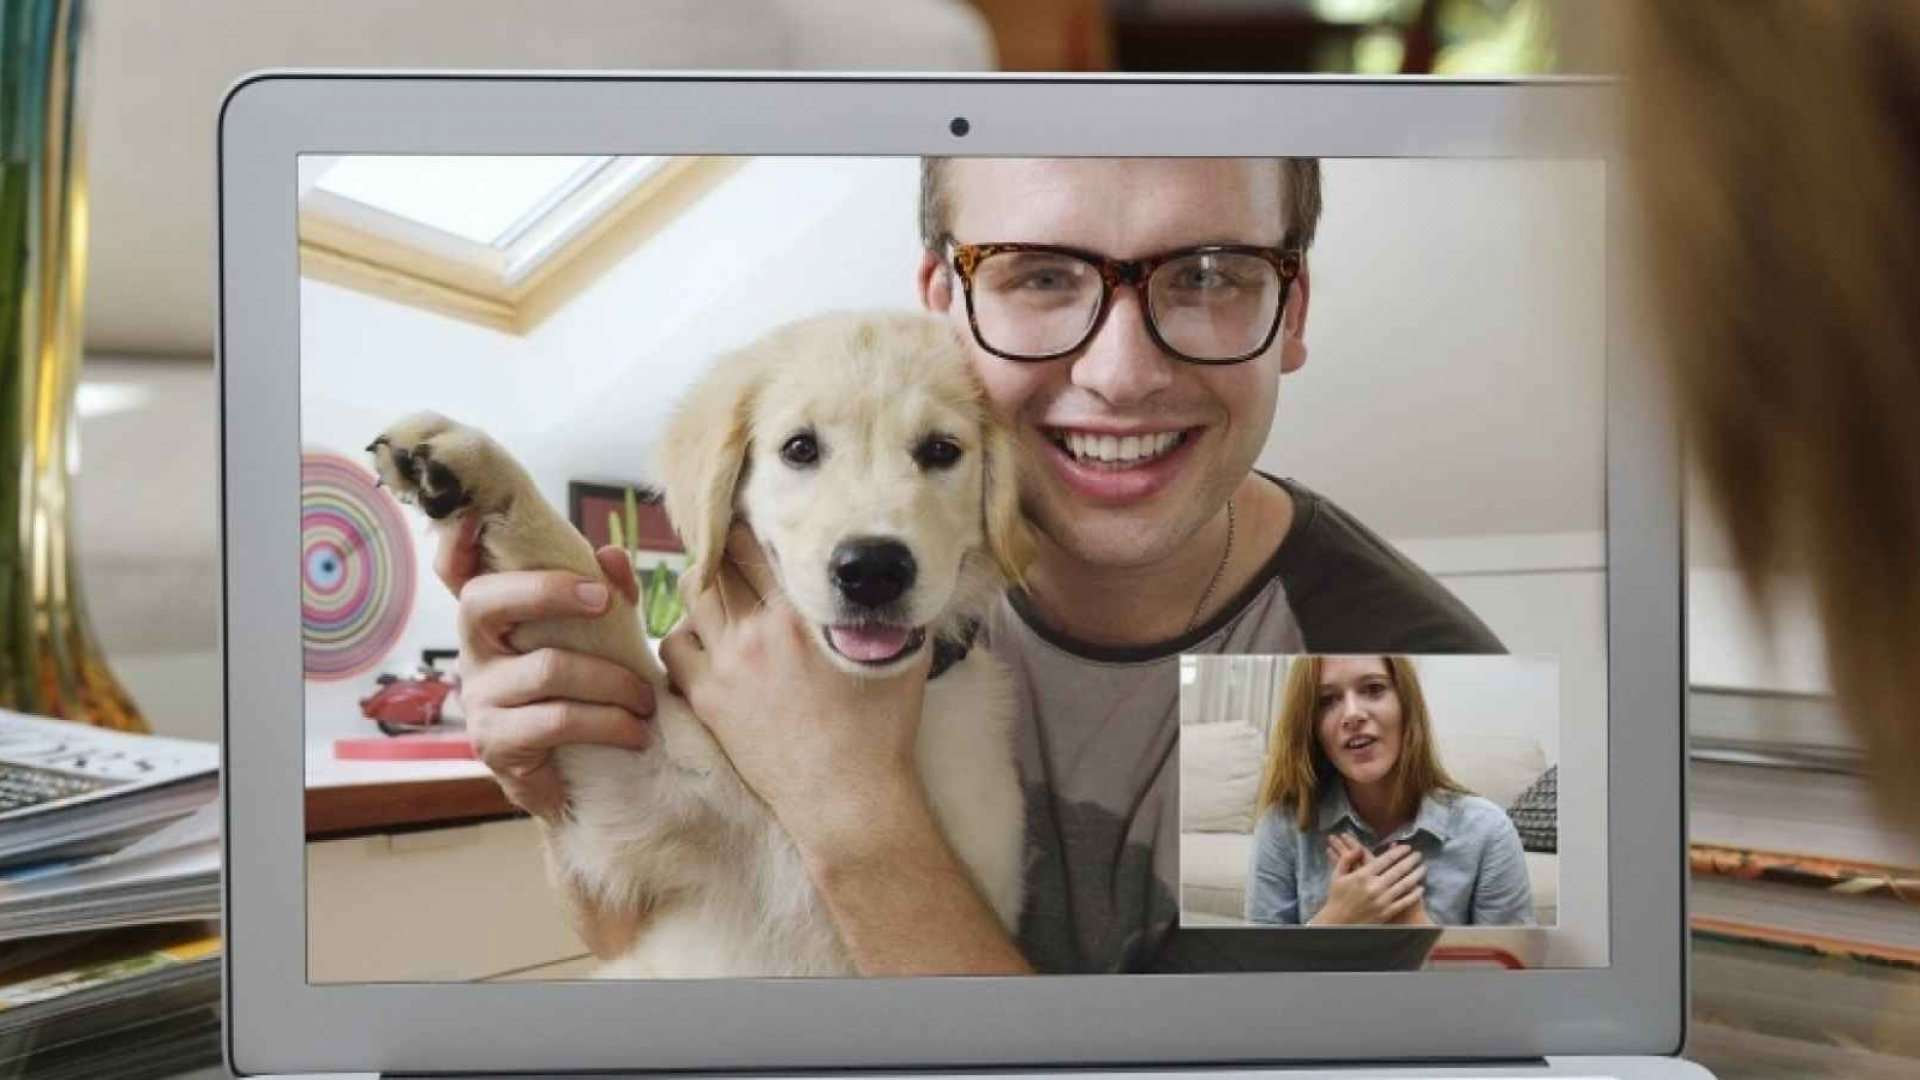 7 Things You Didn't Know About Skype